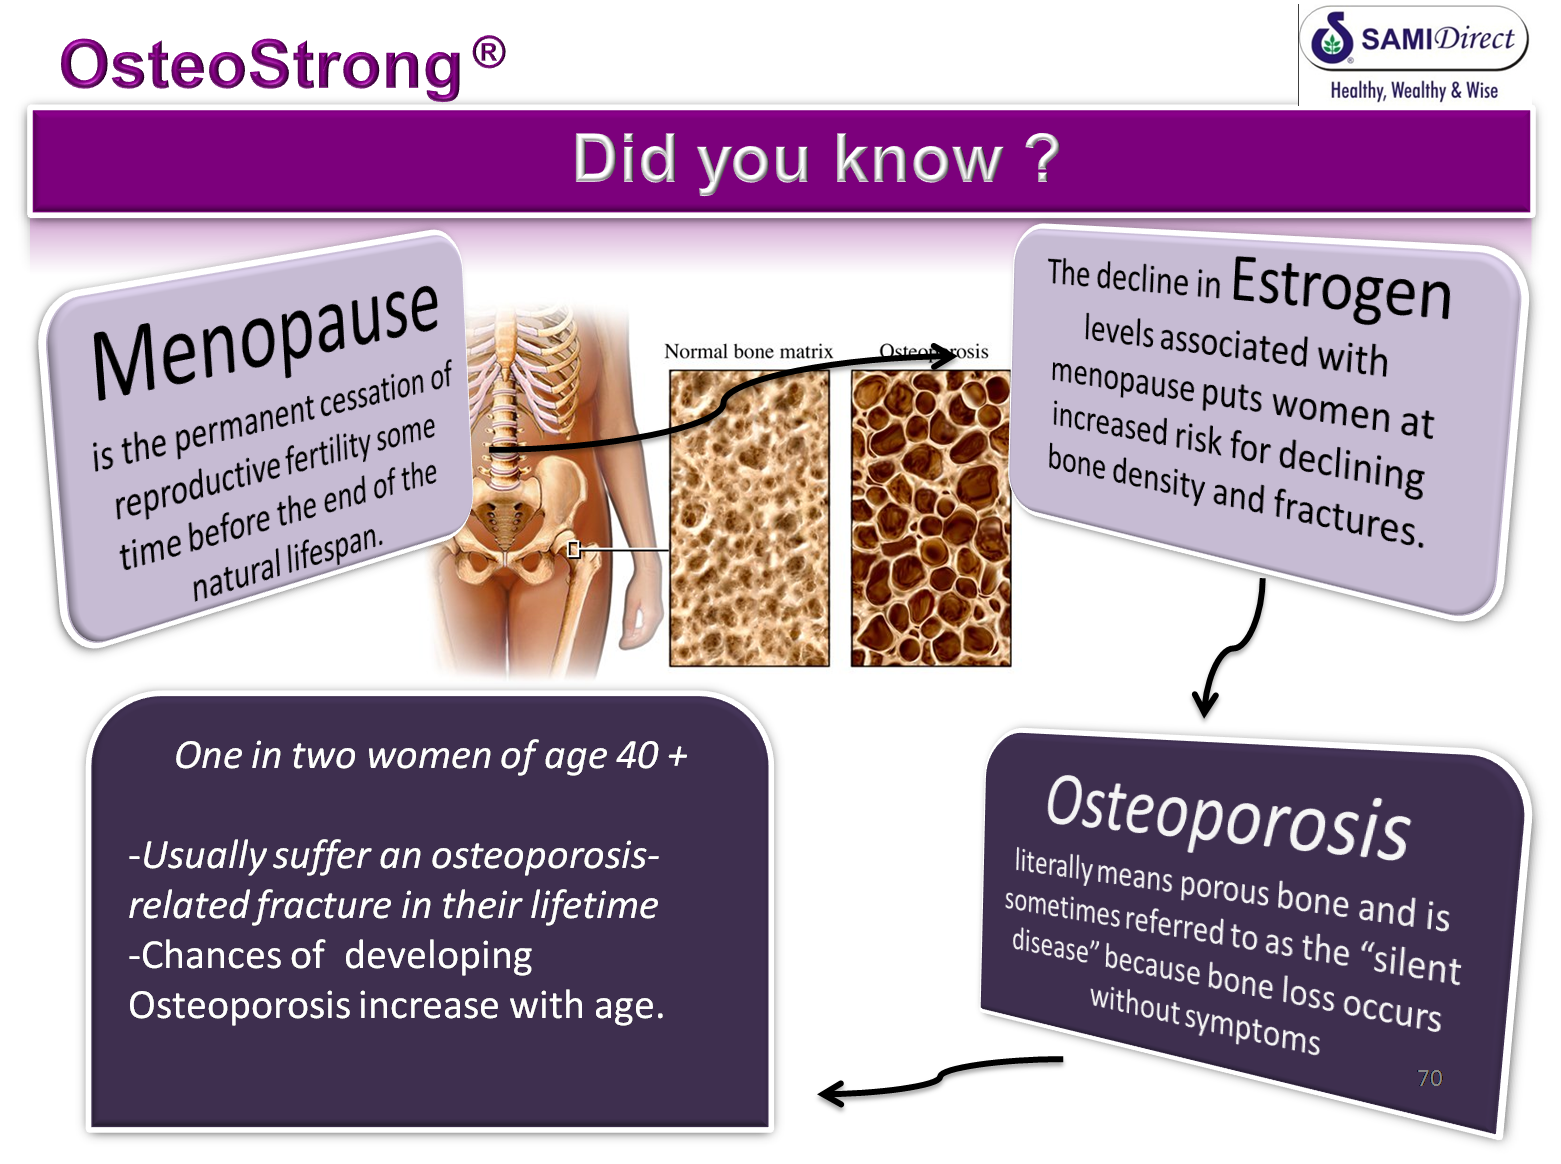 10+ Health promotion and disease prevention for osteoporosis info